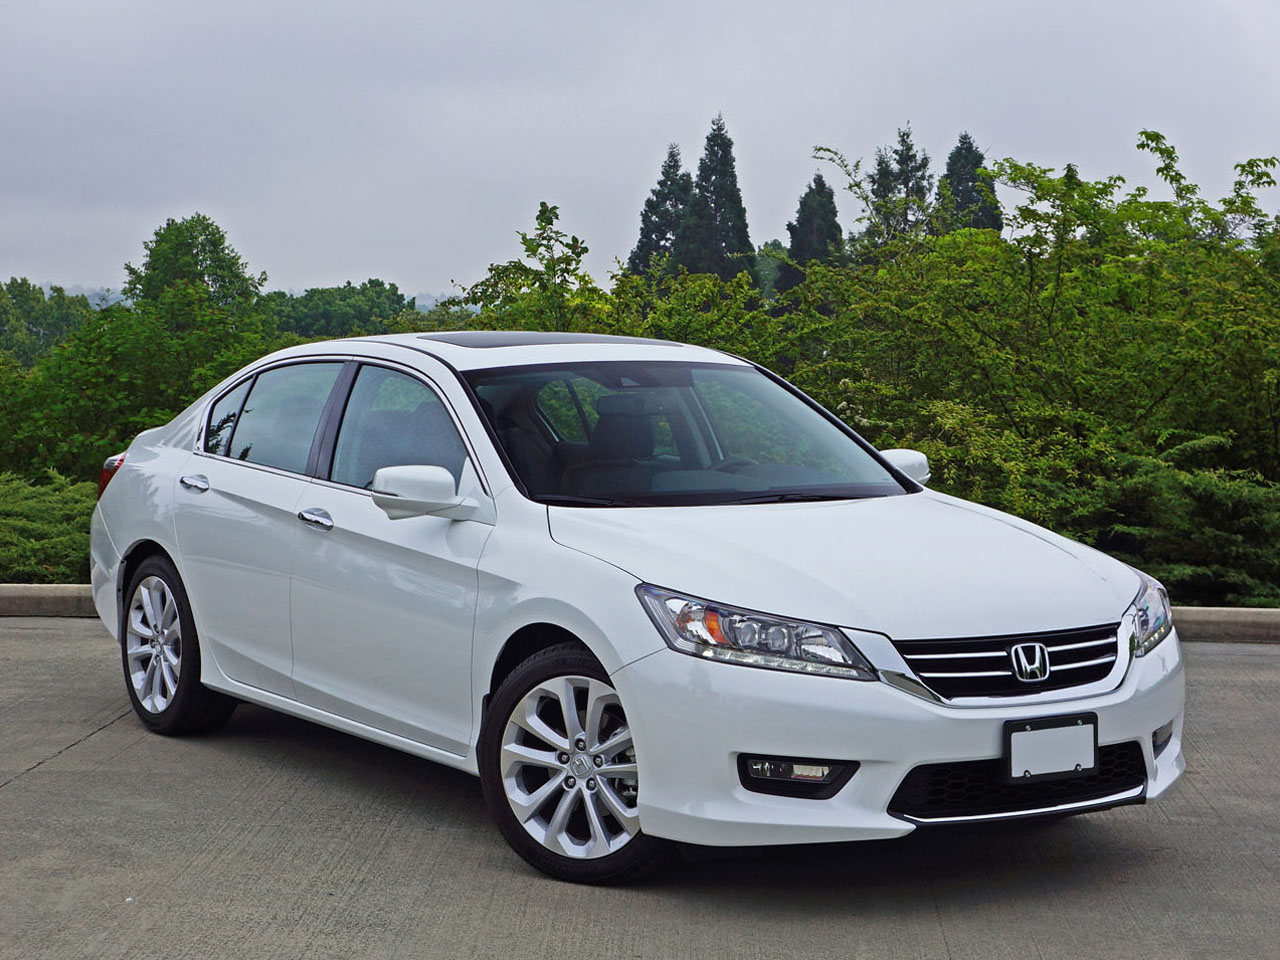 2015 honda accord touring v6 road test review carcostcanada